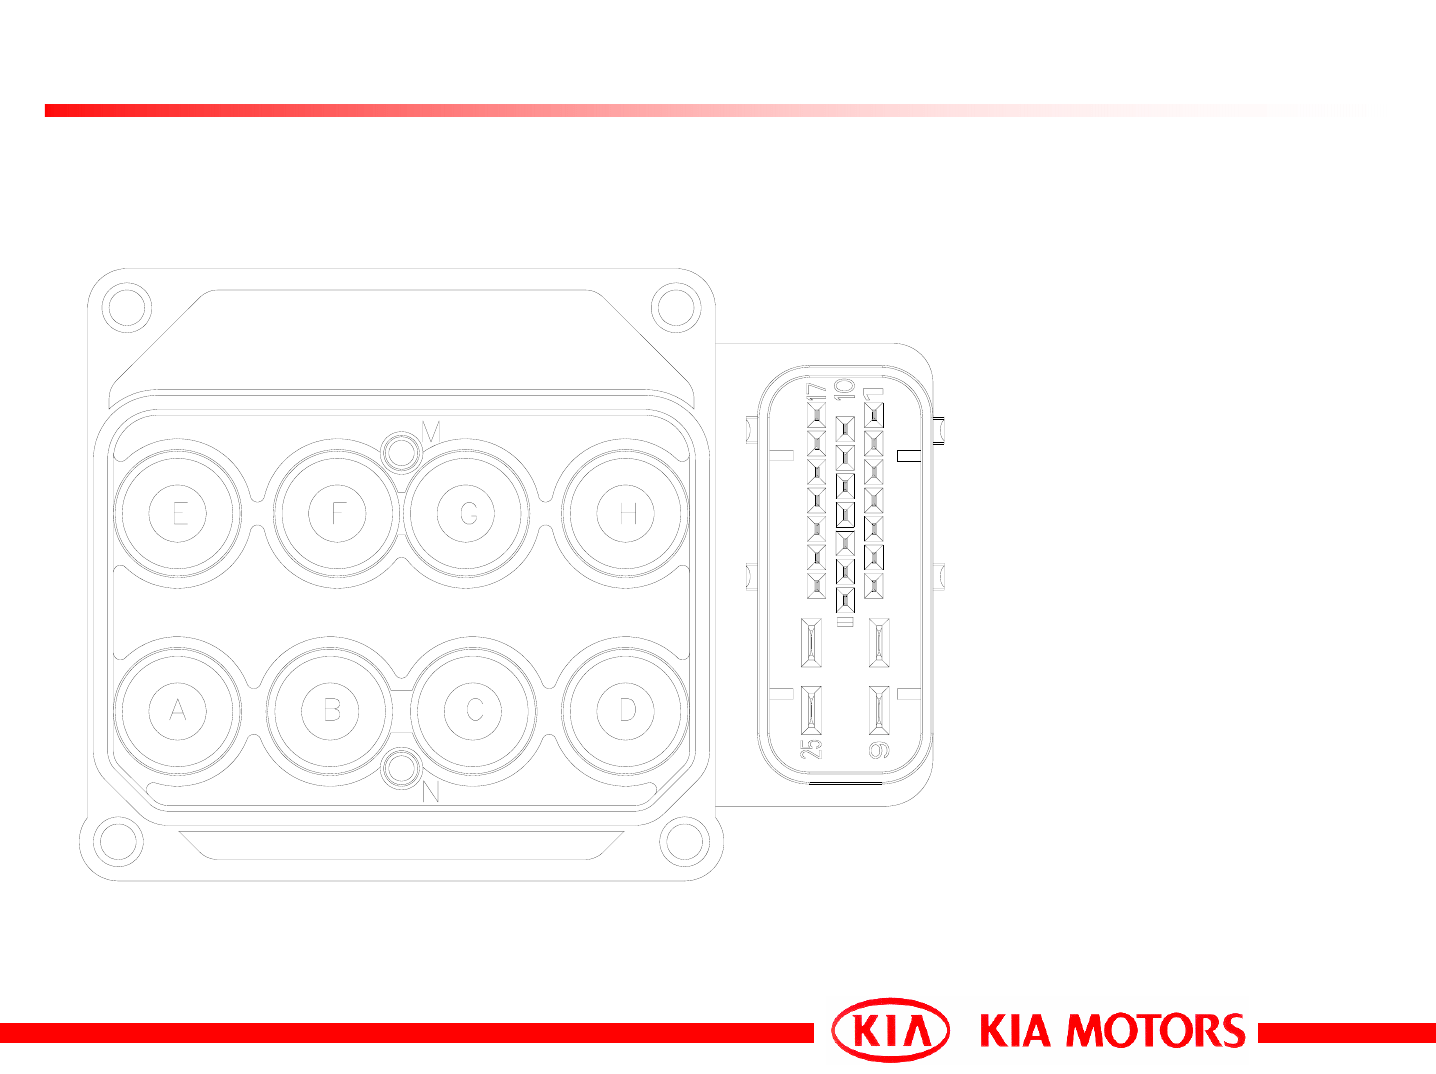 [WRG-3749] Kia Carens Wiring Diagram